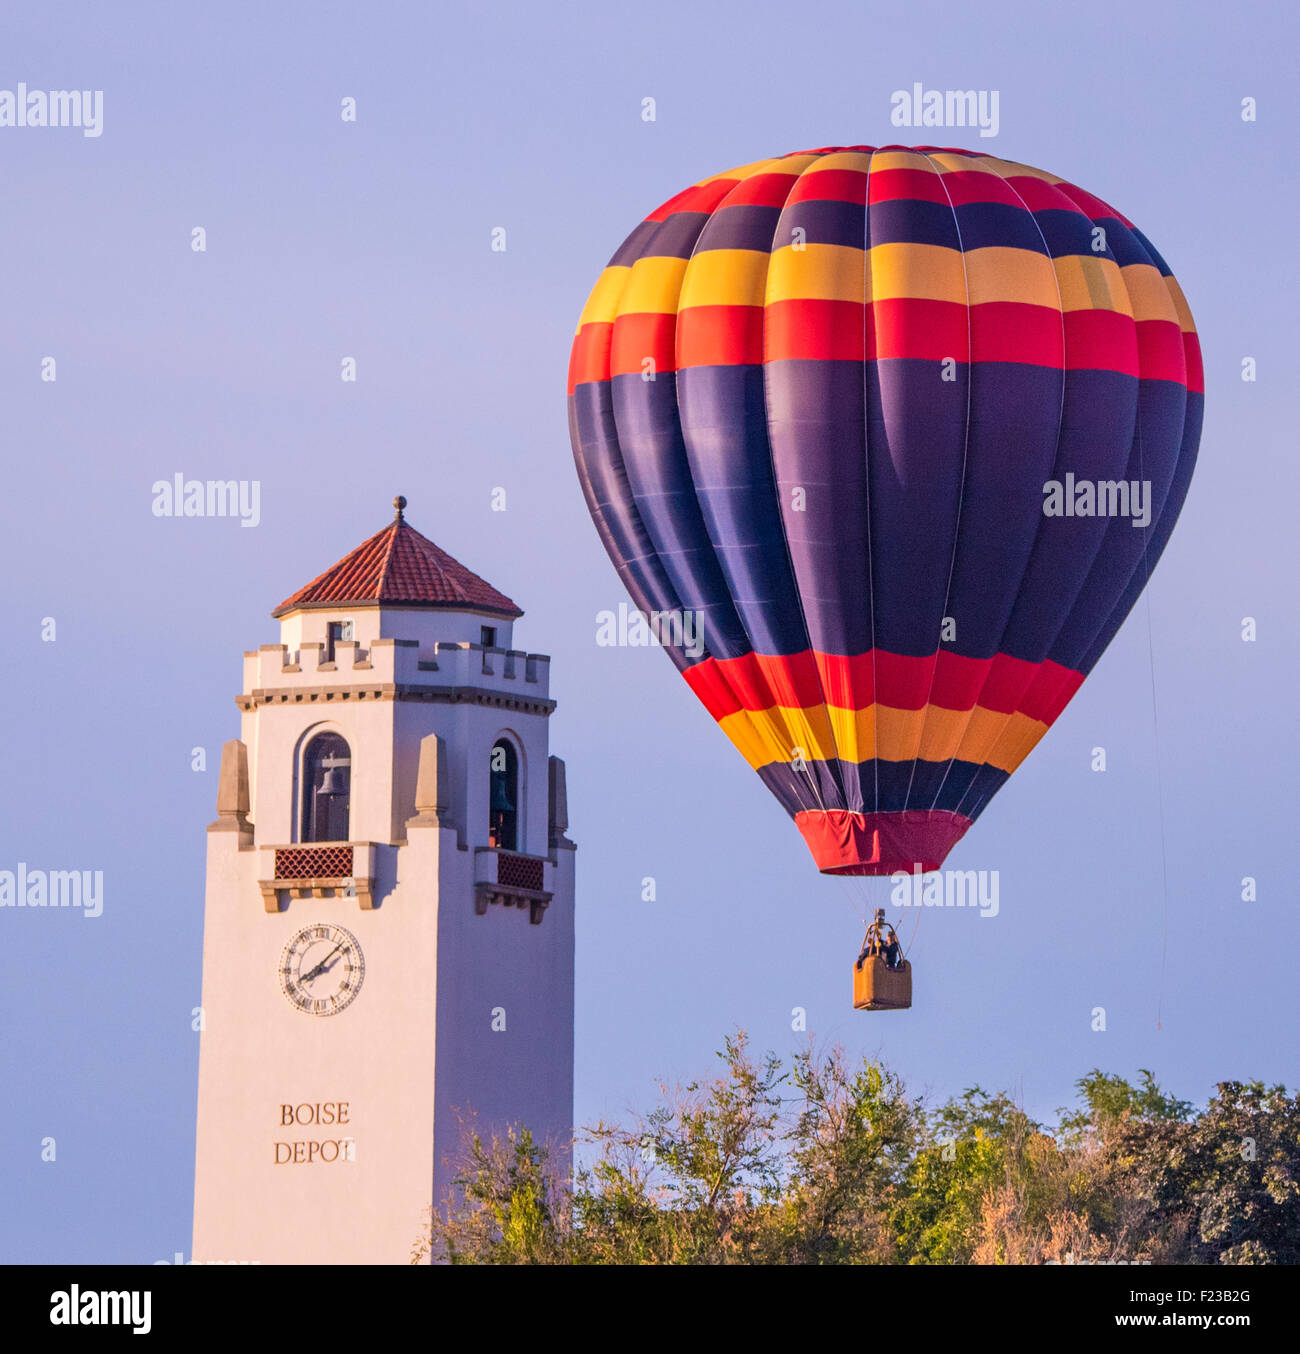 union pacific boise depot balloons hovering overhead during spirit